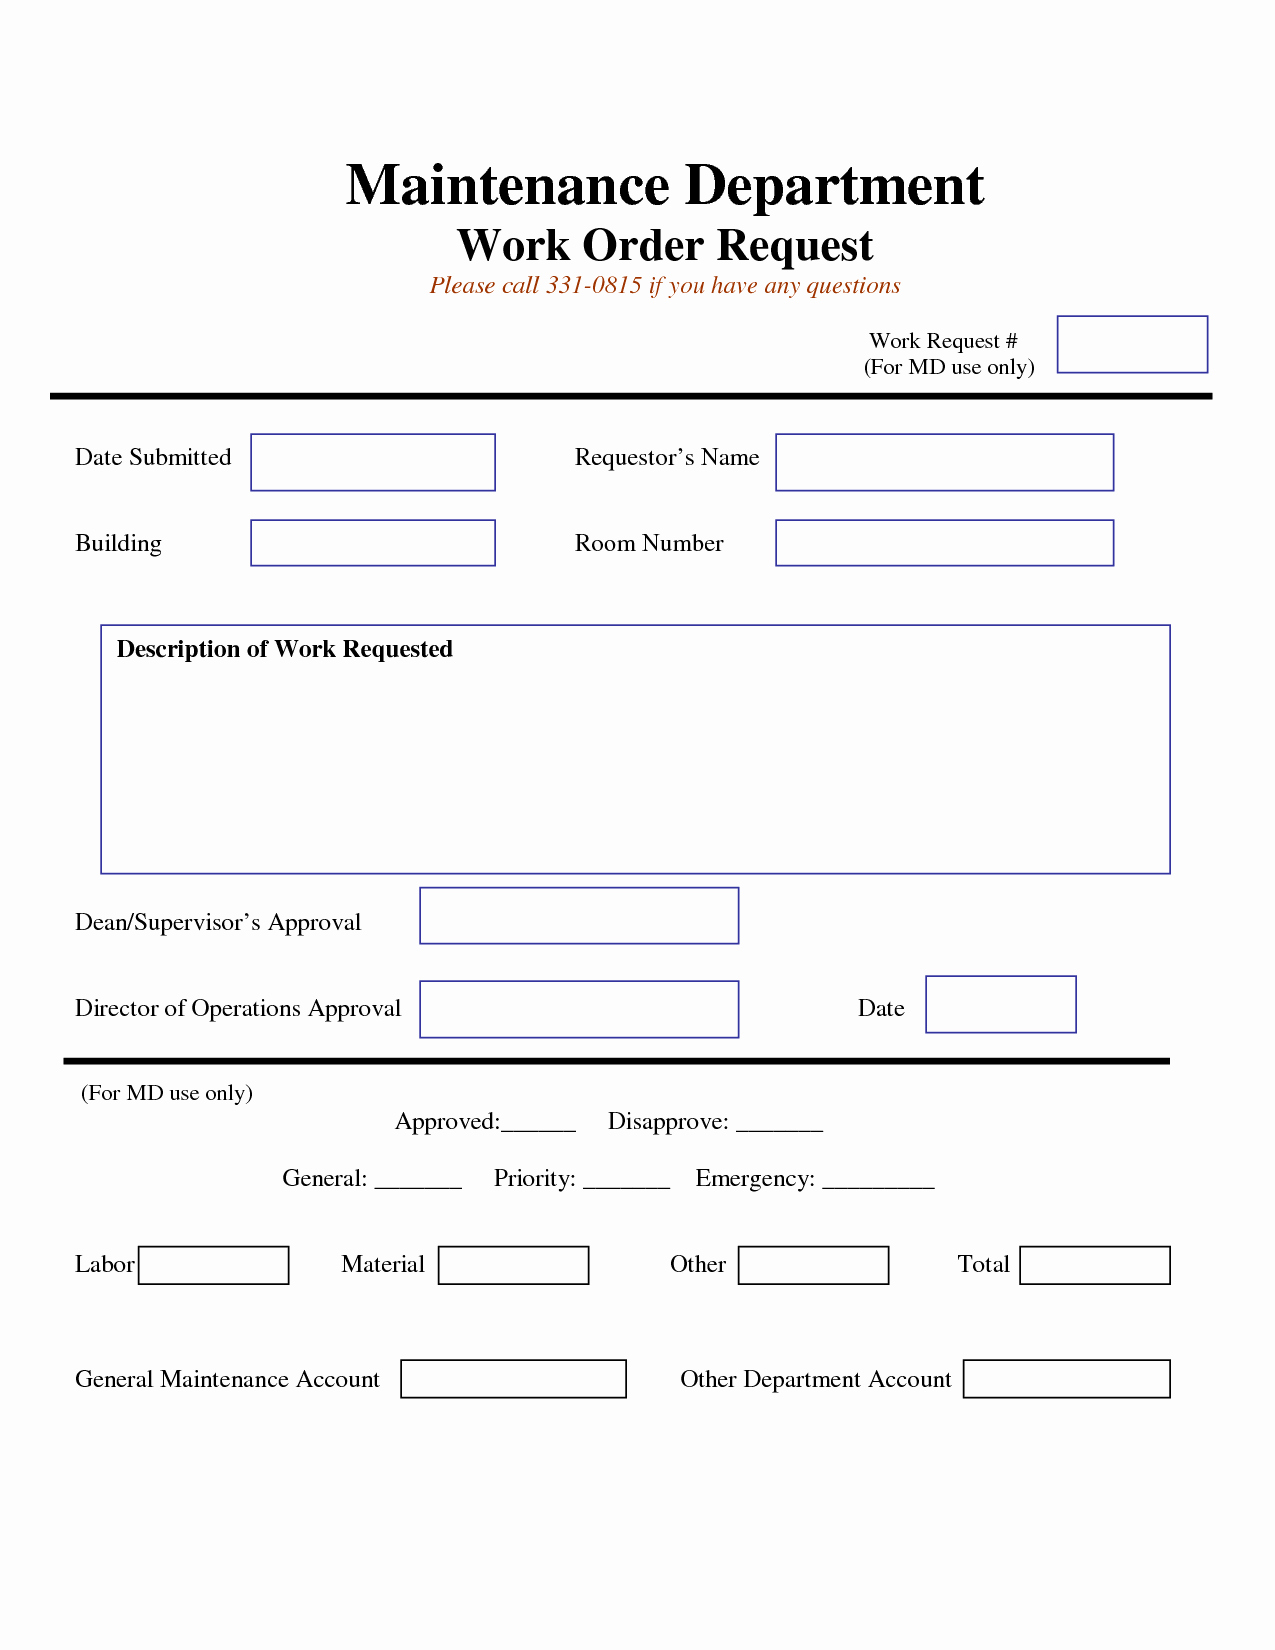 Maintenance Work order Template Excel Lovely Work Request form